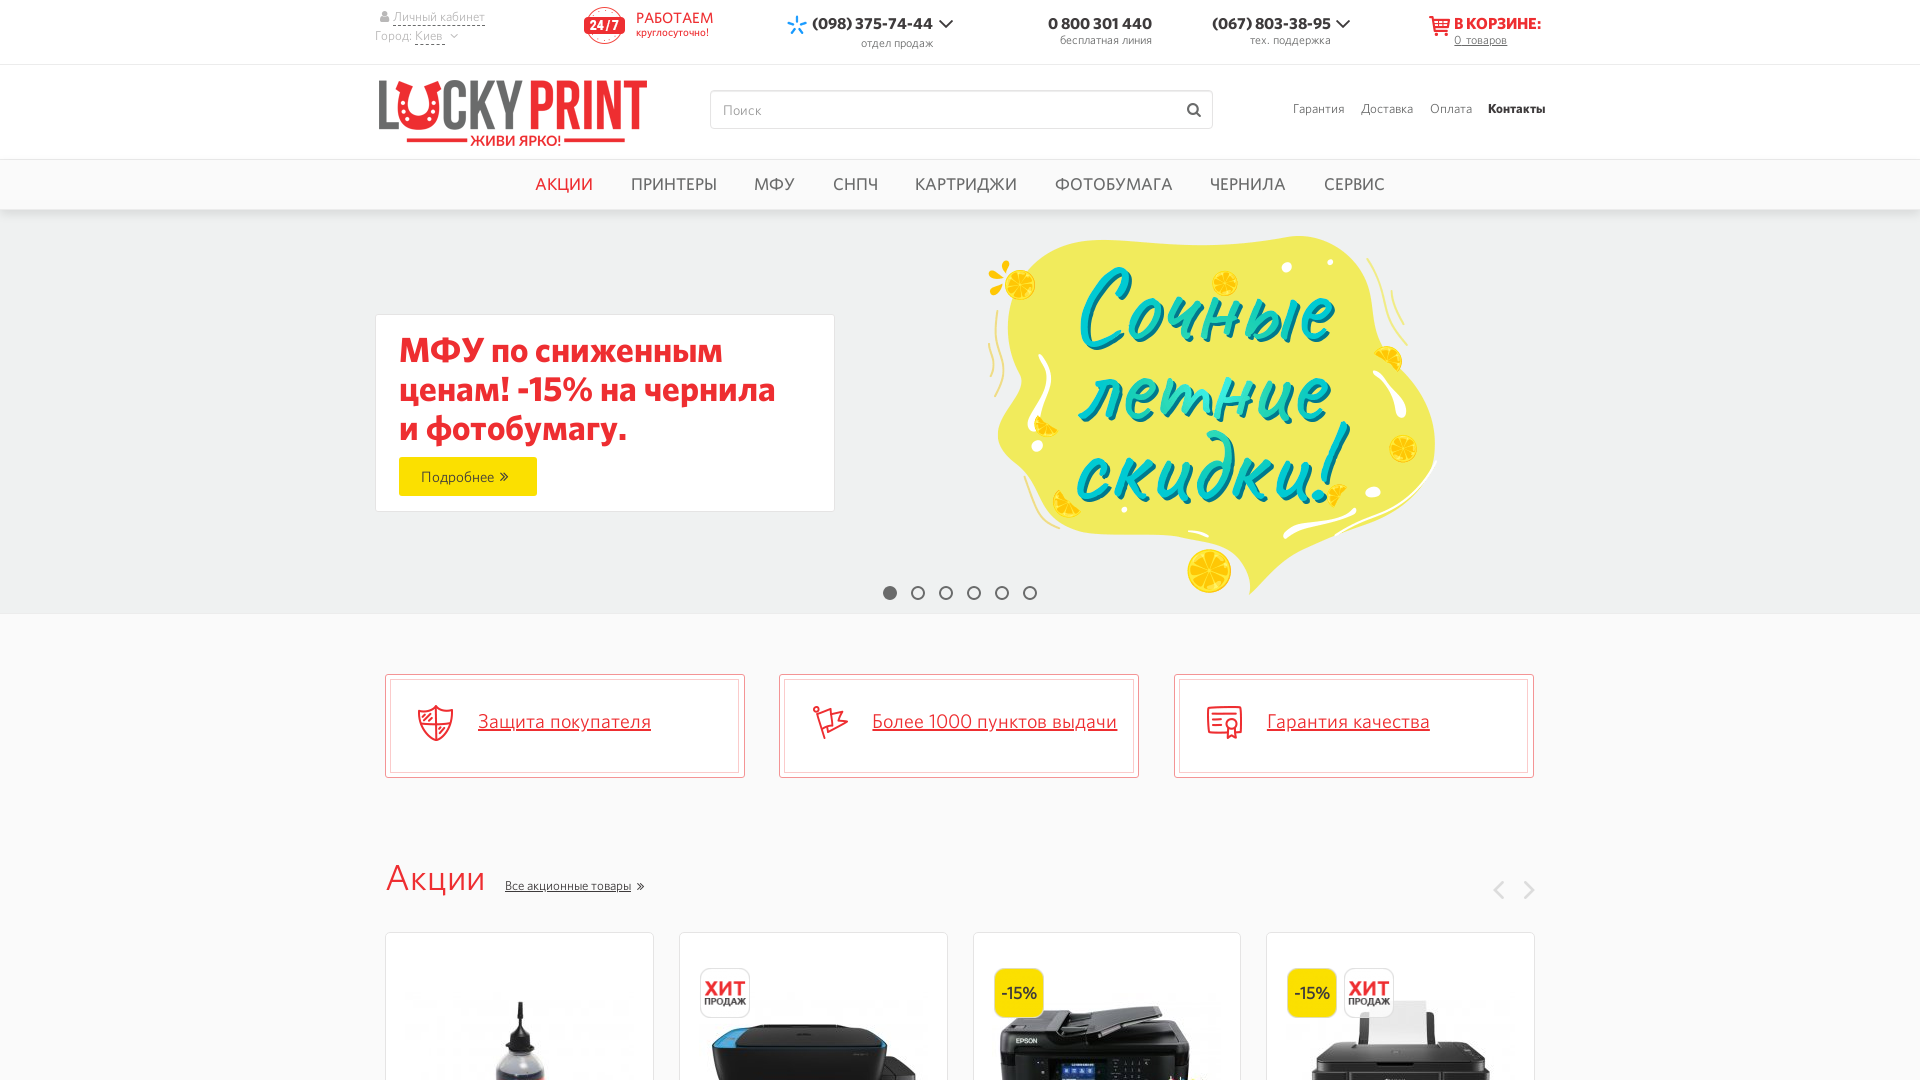 Lucky Print UA website